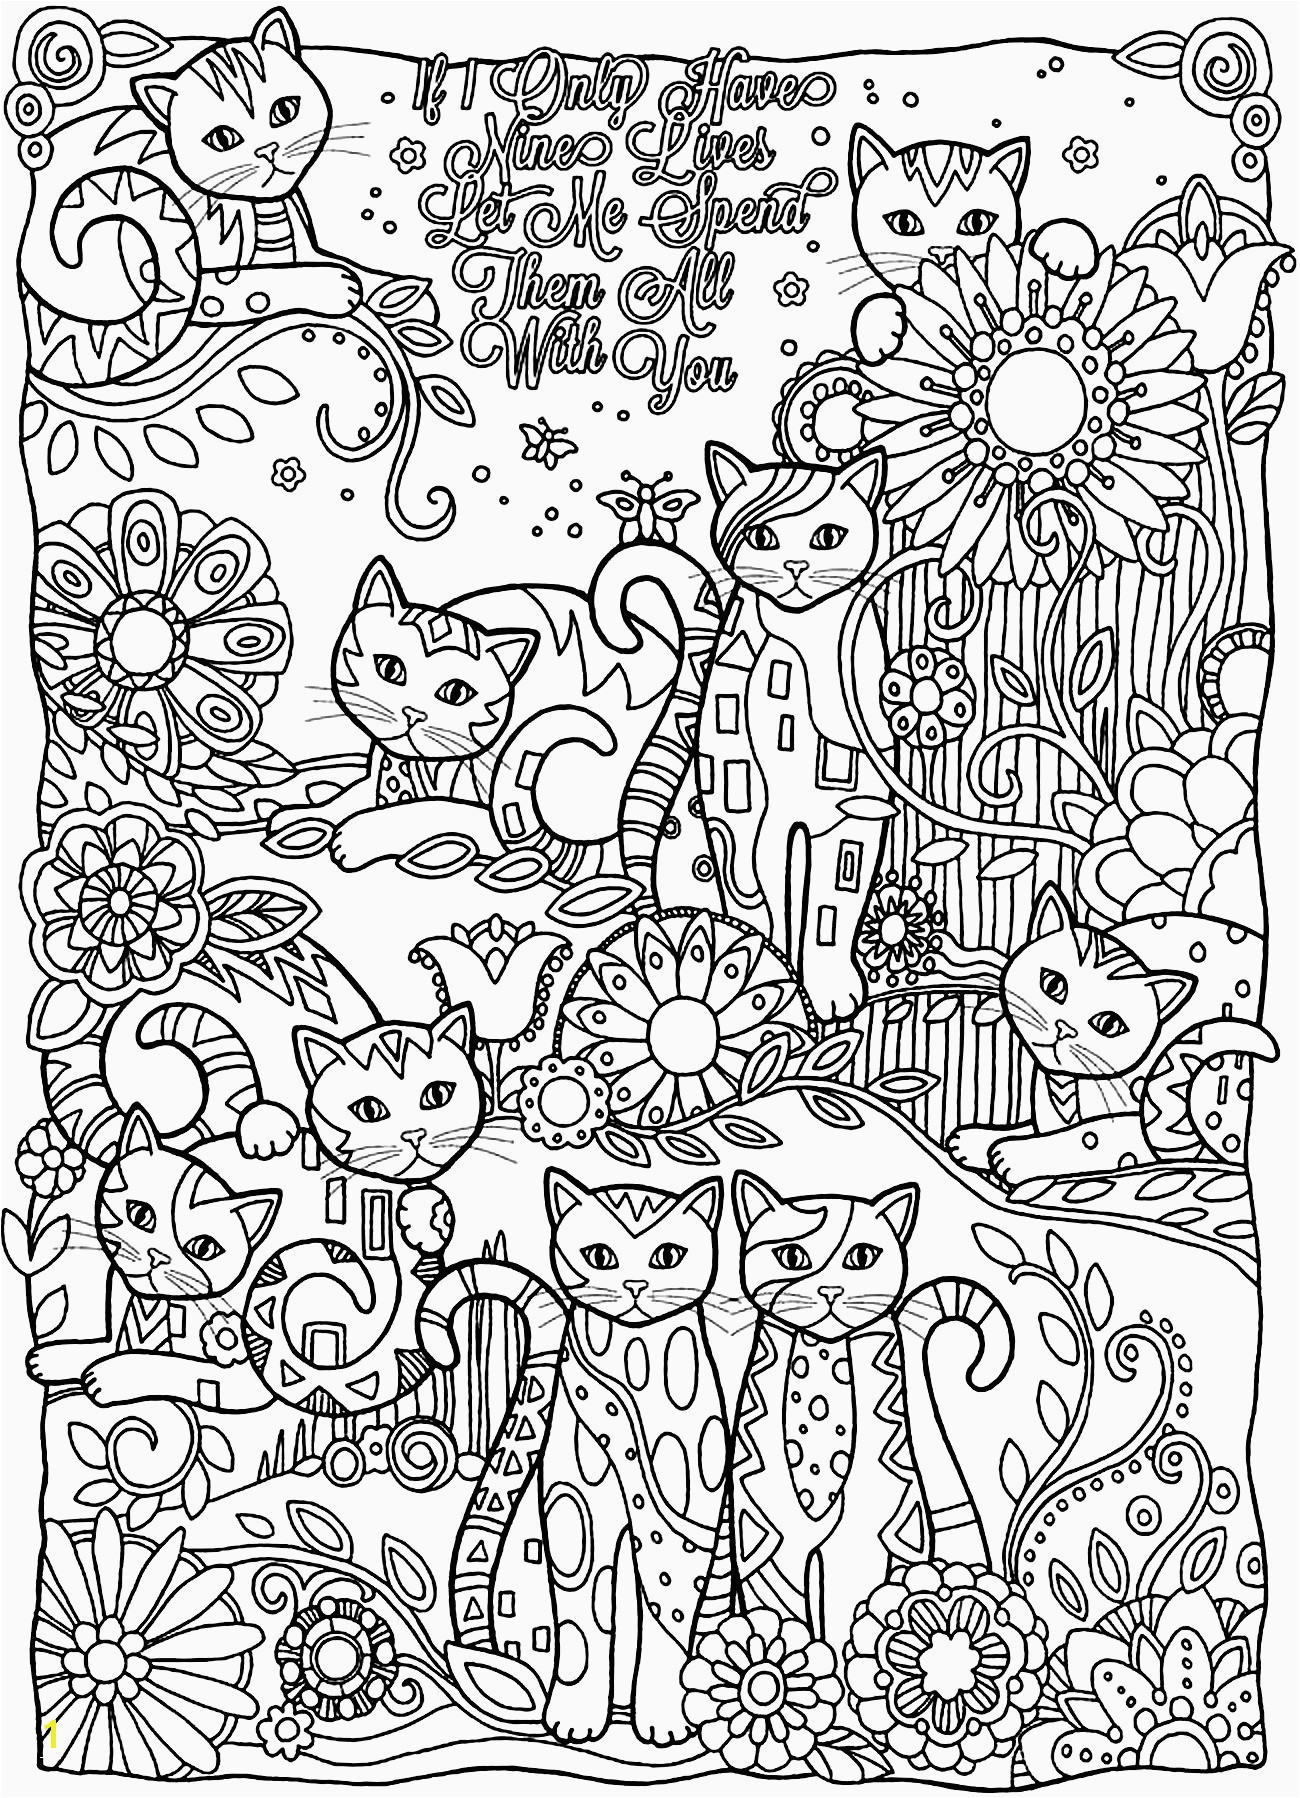 Printable Coloring Sheets for Adults Beautiful Cute Printable